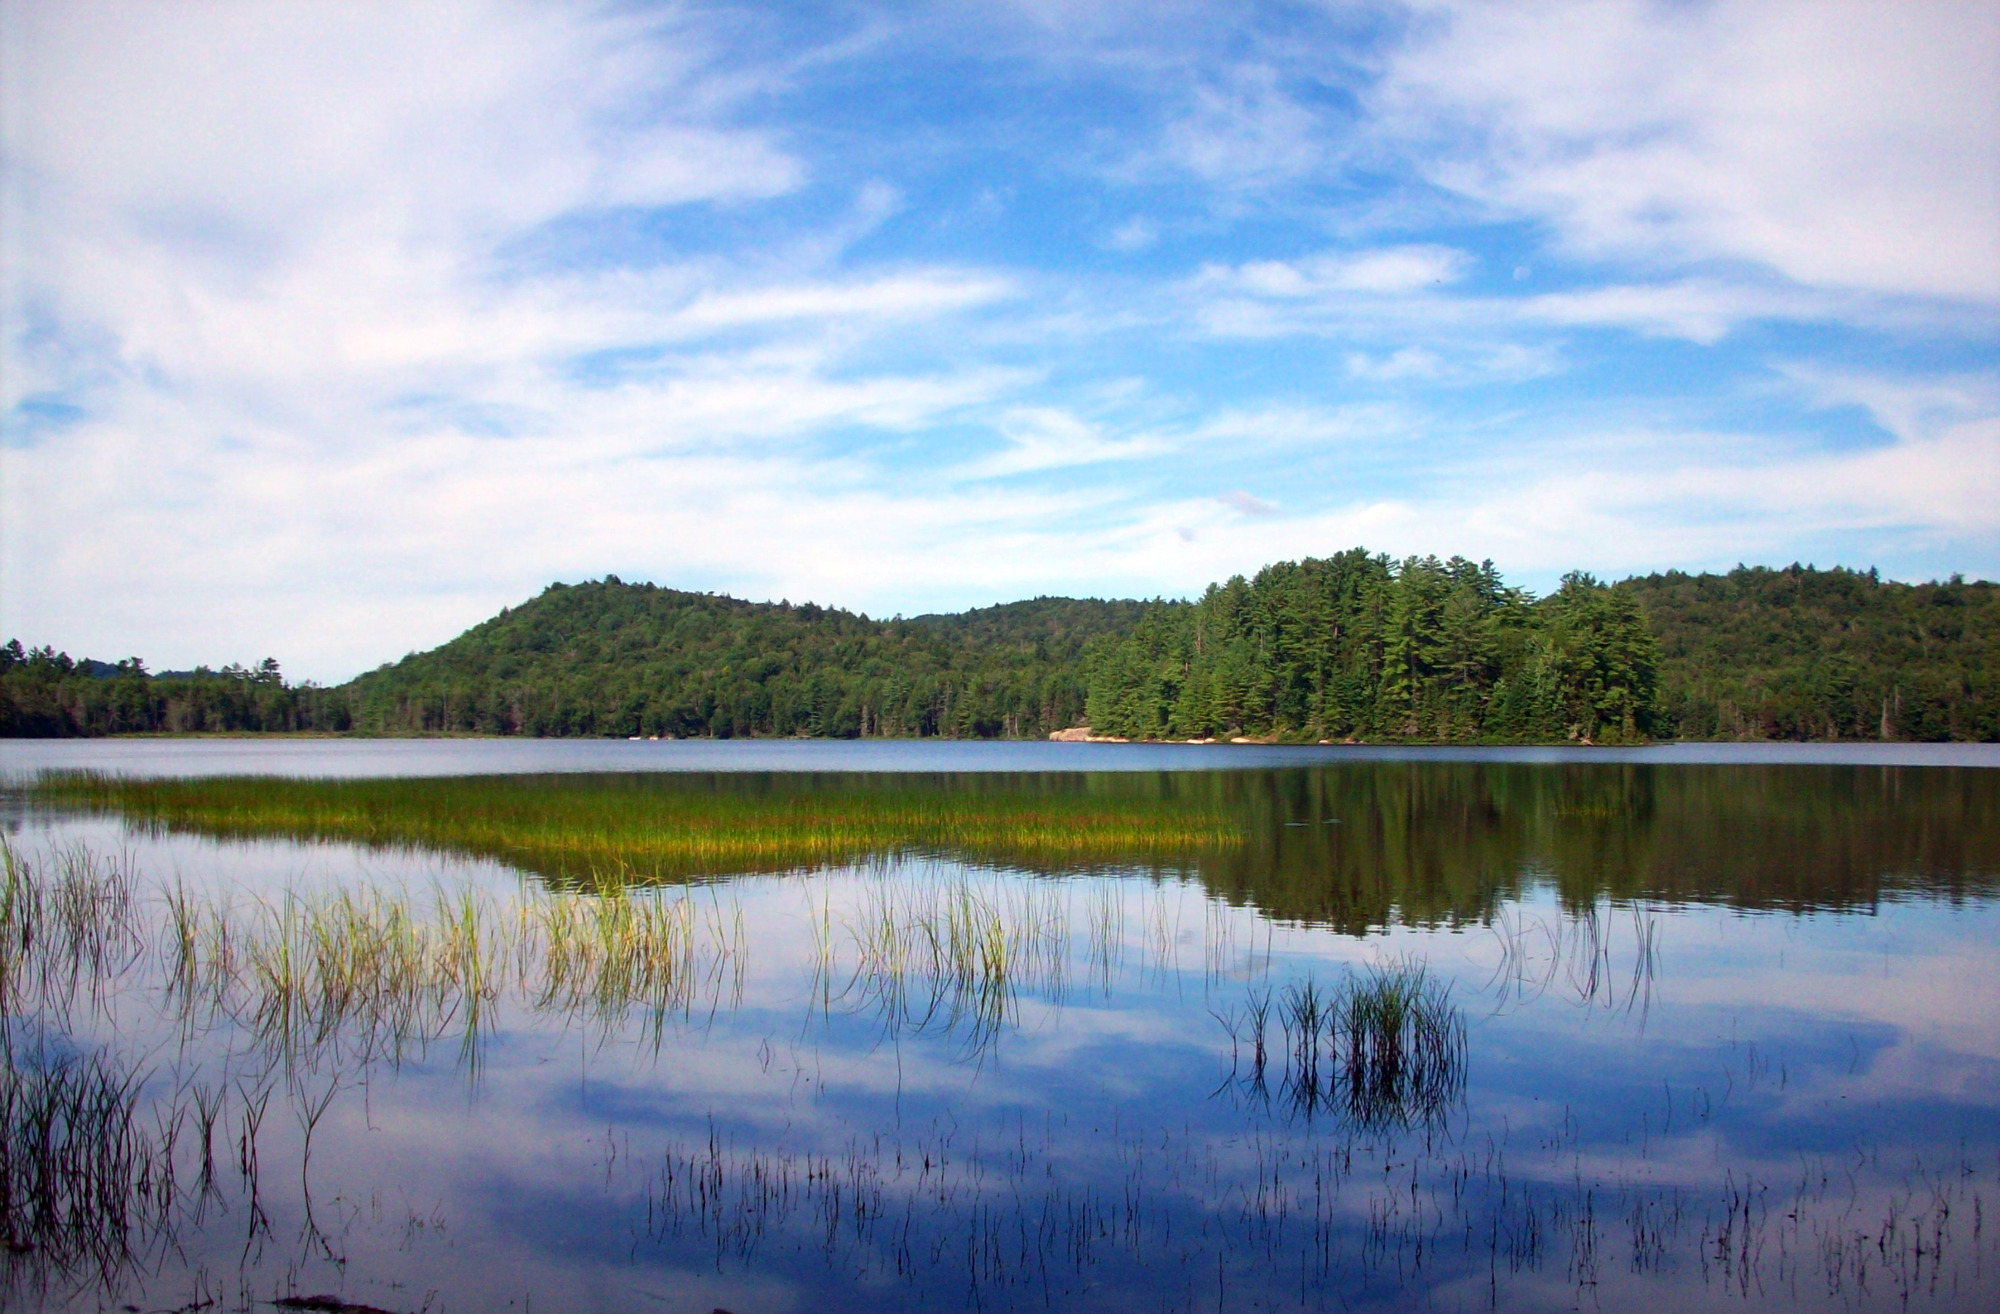 raquette lake New york state department of environmental conservation division of fish, wildlife and marine resources lake map series region 5 raquette lake.